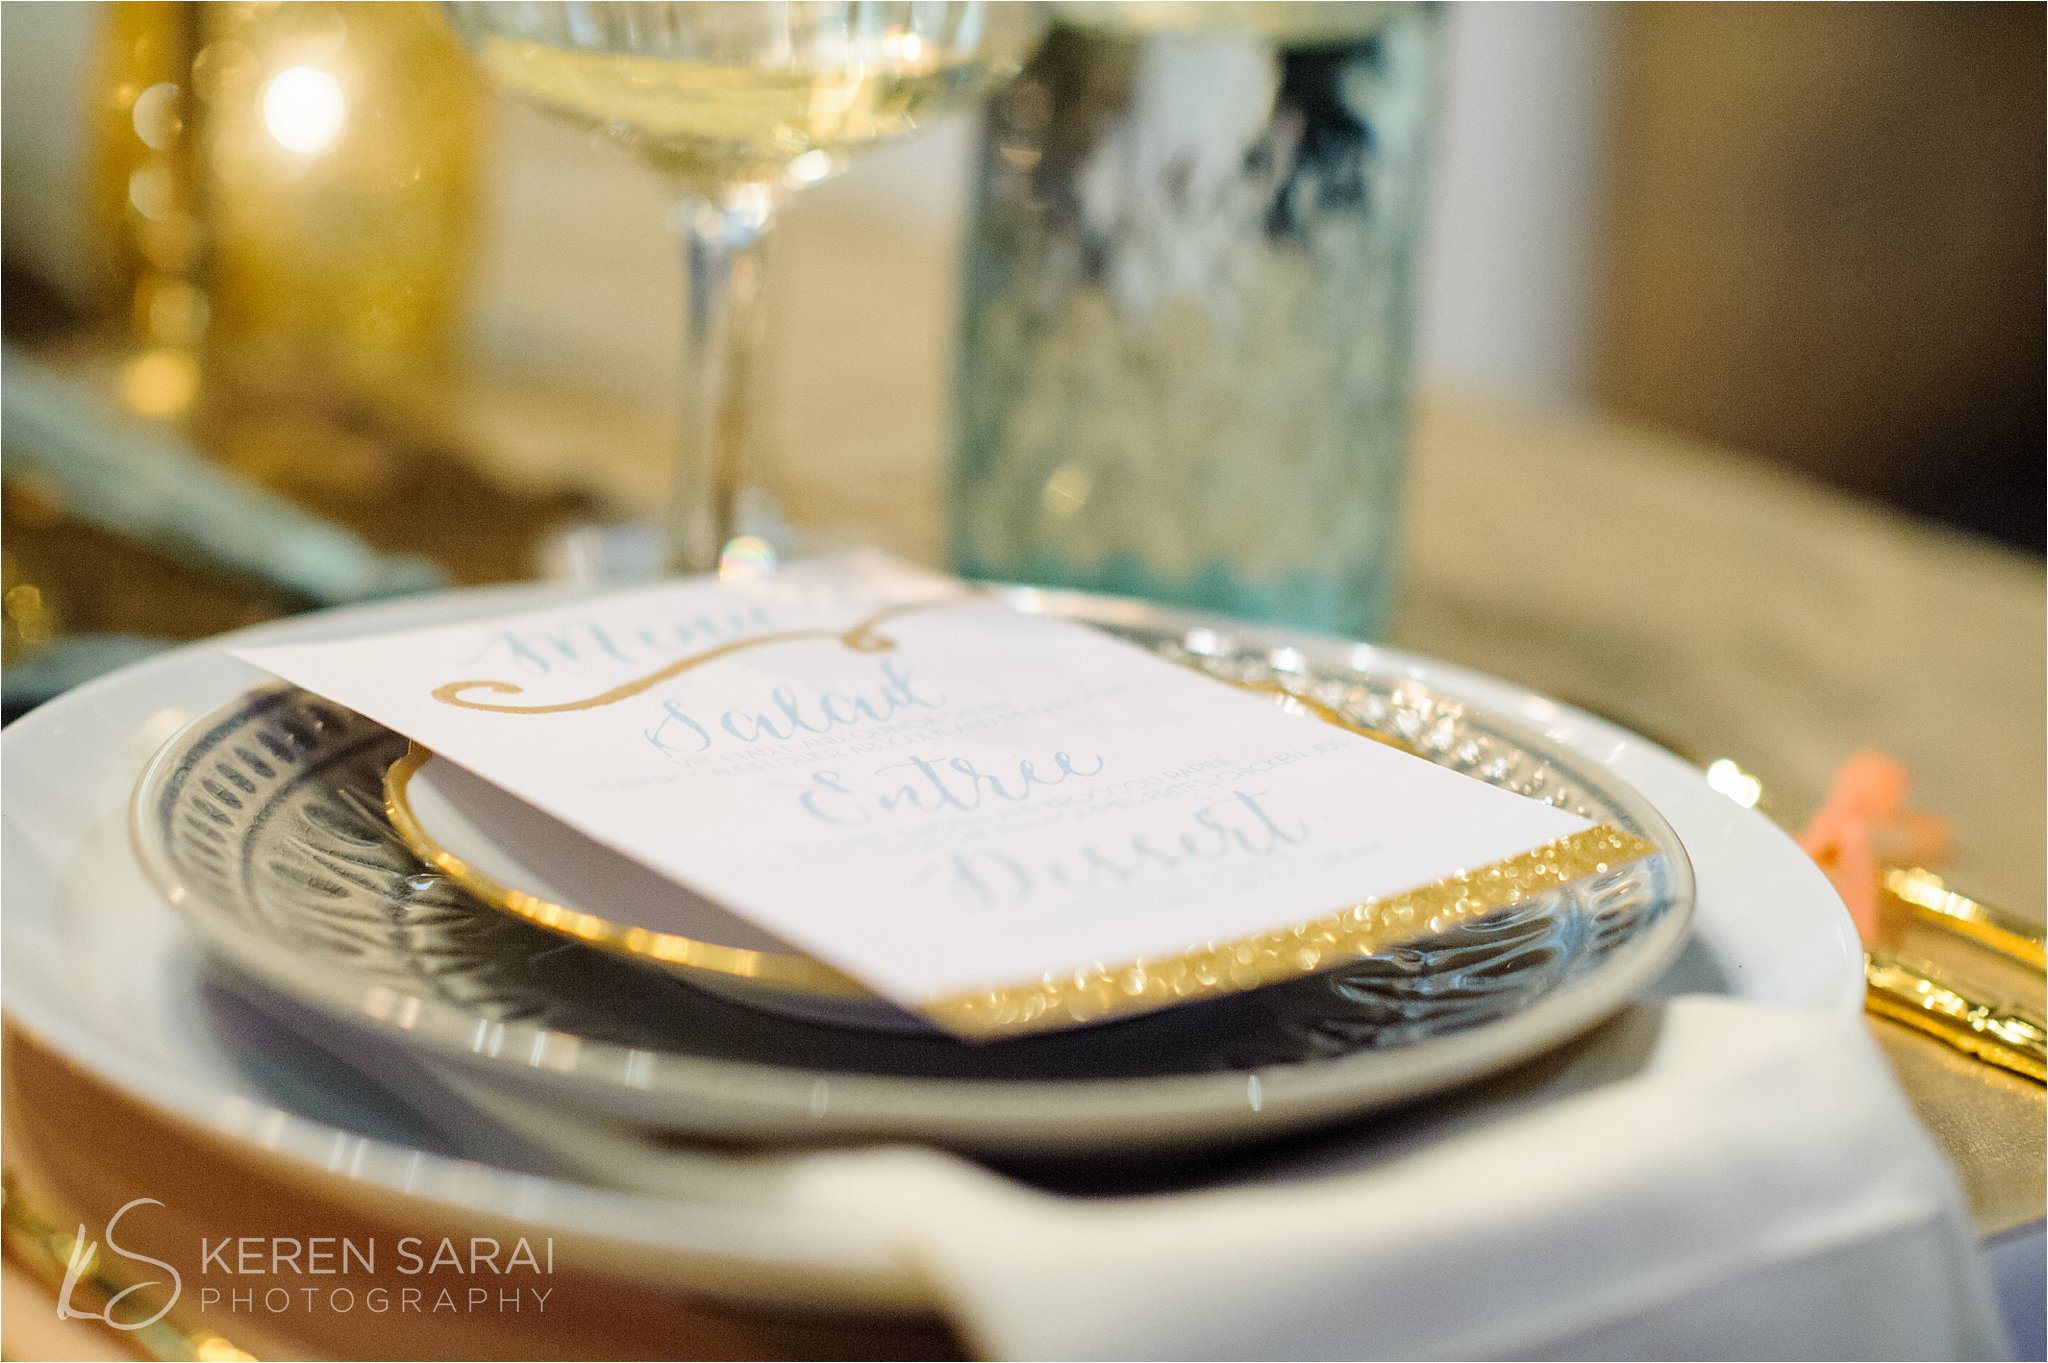 Champagne Salon Chicago Engagement And Wedding Photography Keren Sarairm